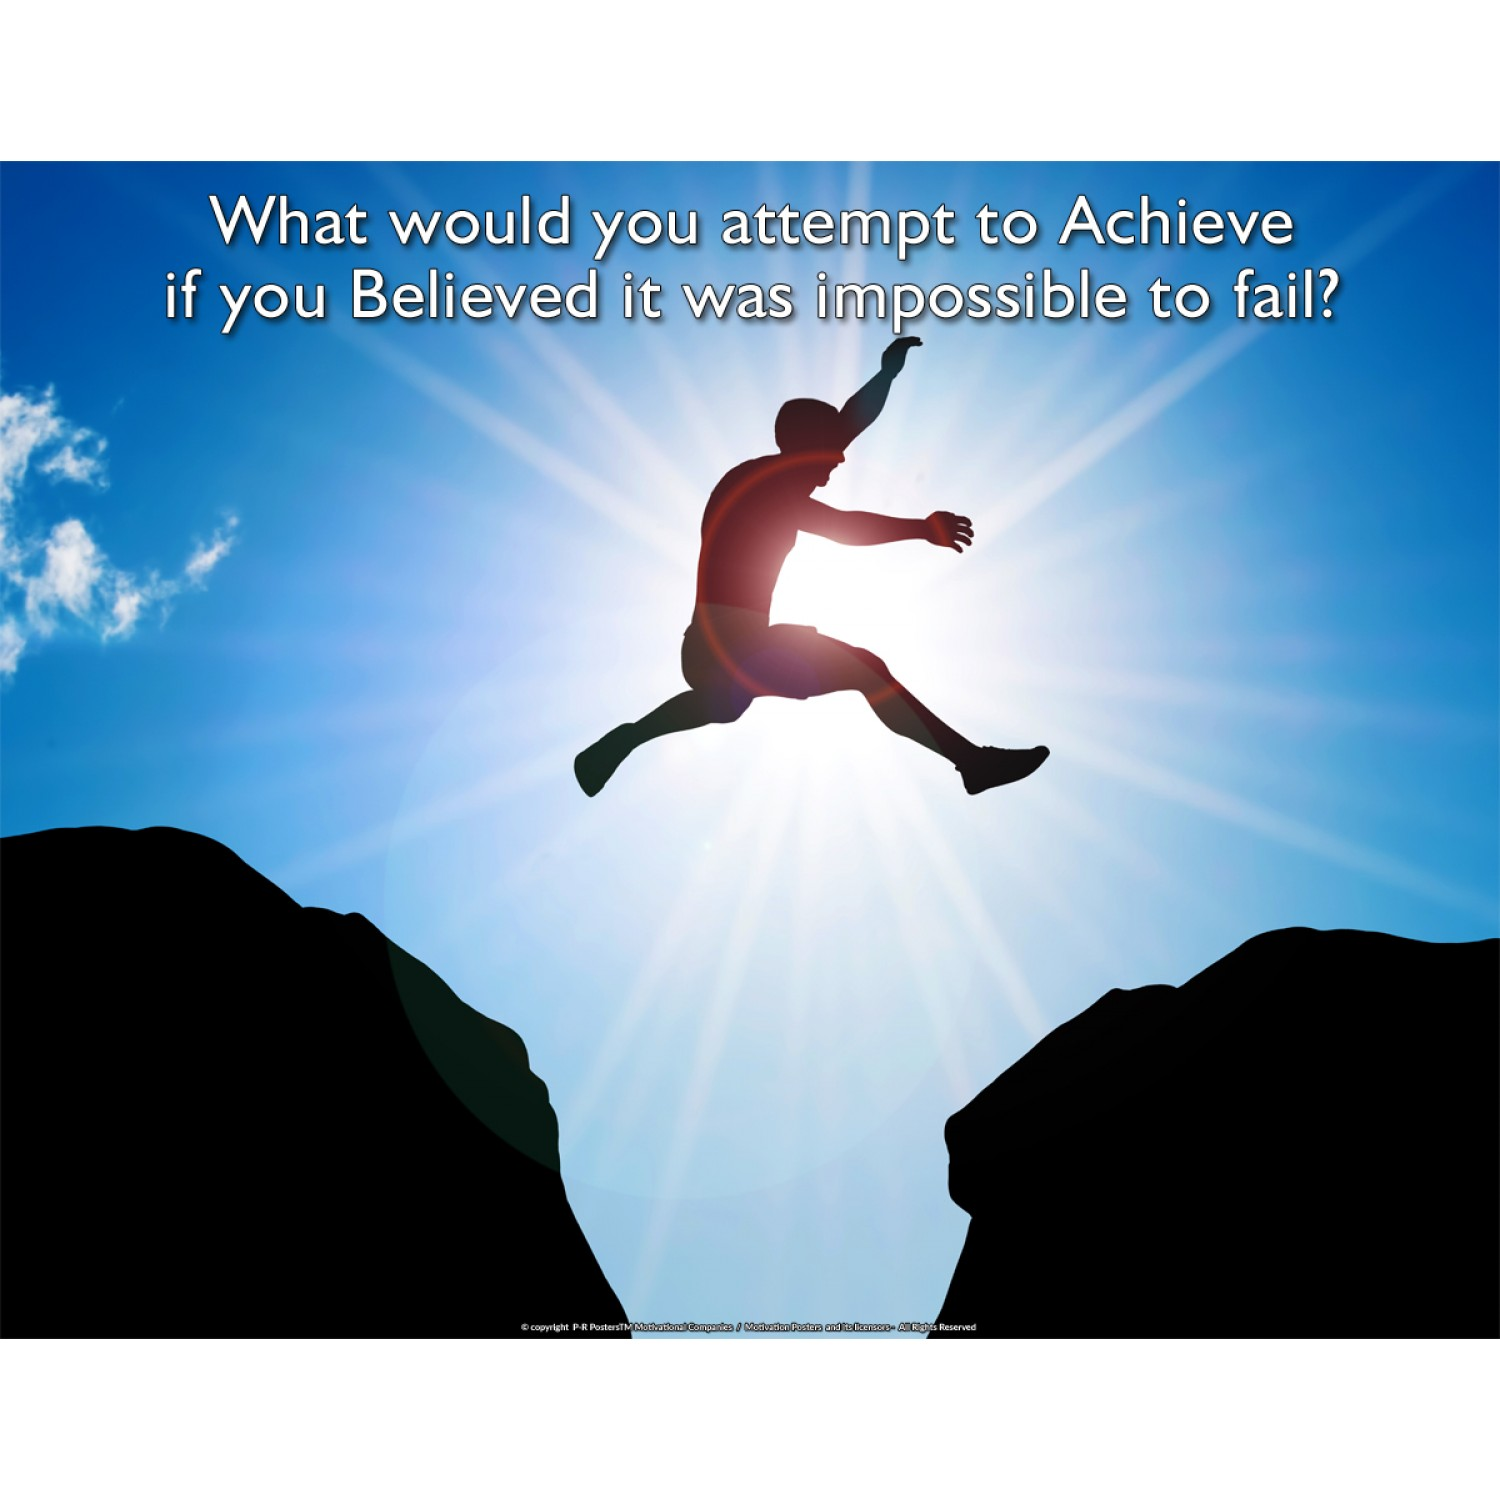 What would you attempt to Achieve...